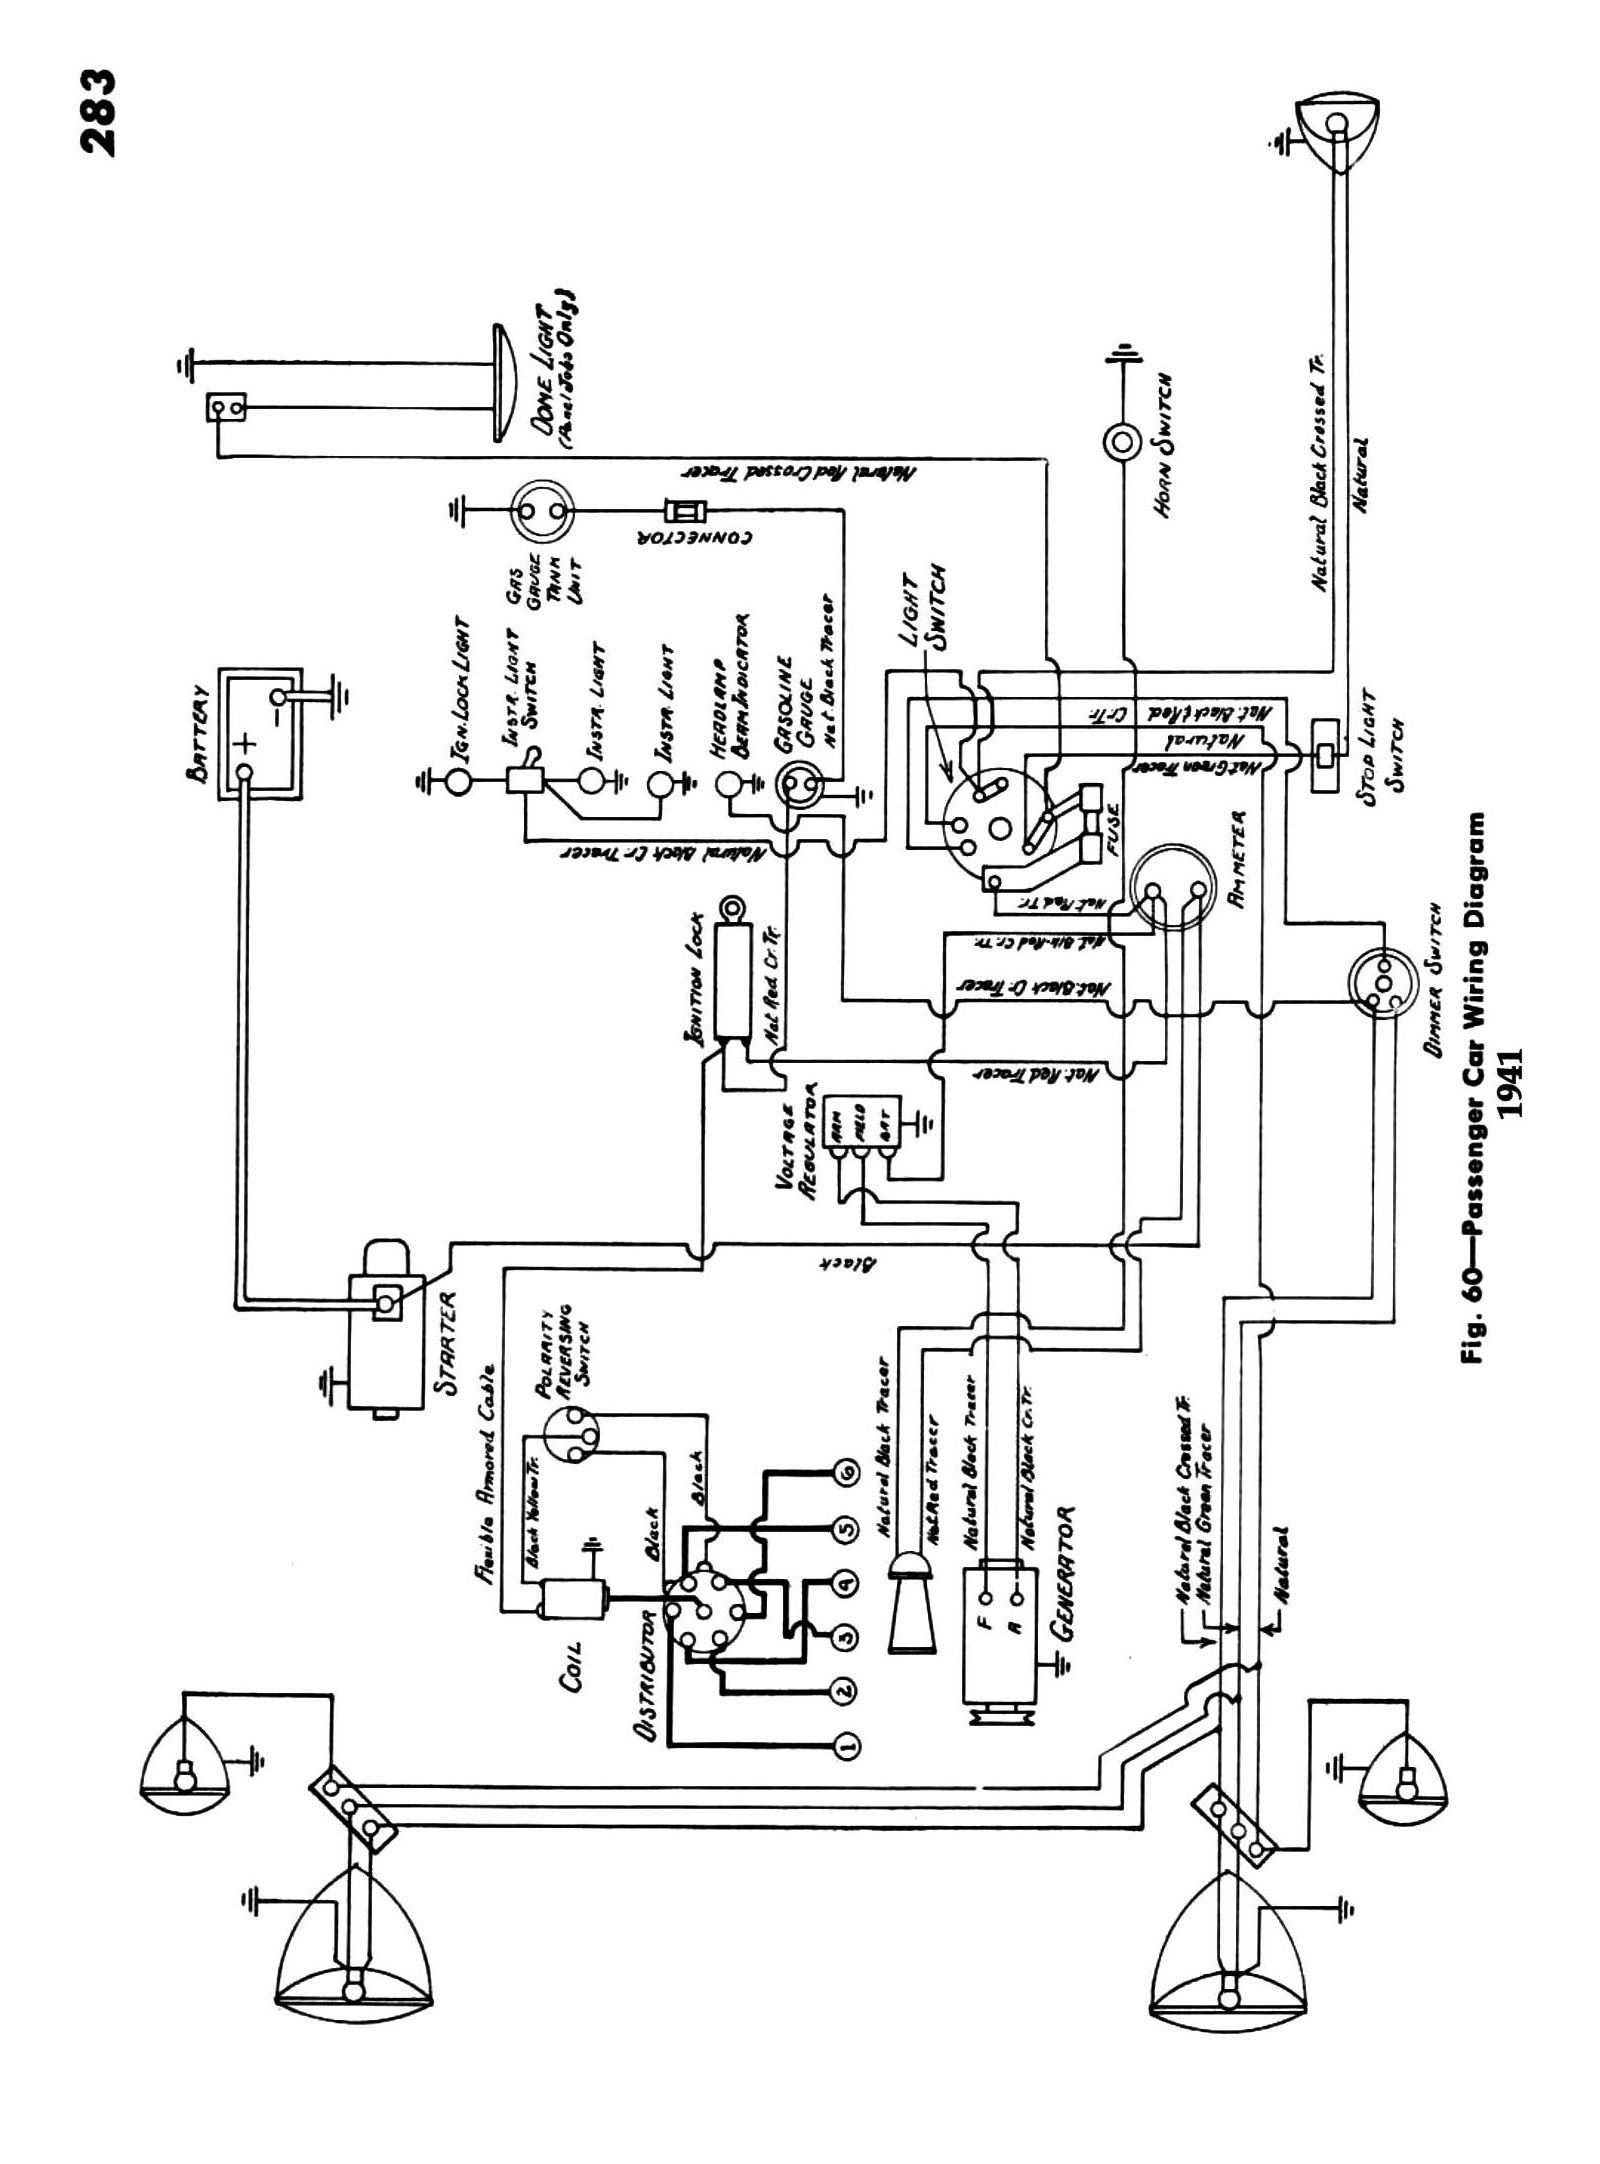 hight resolution of 1941 chrysler ignition switch wiring wiring library 1941 chrysler ignition switch wiring